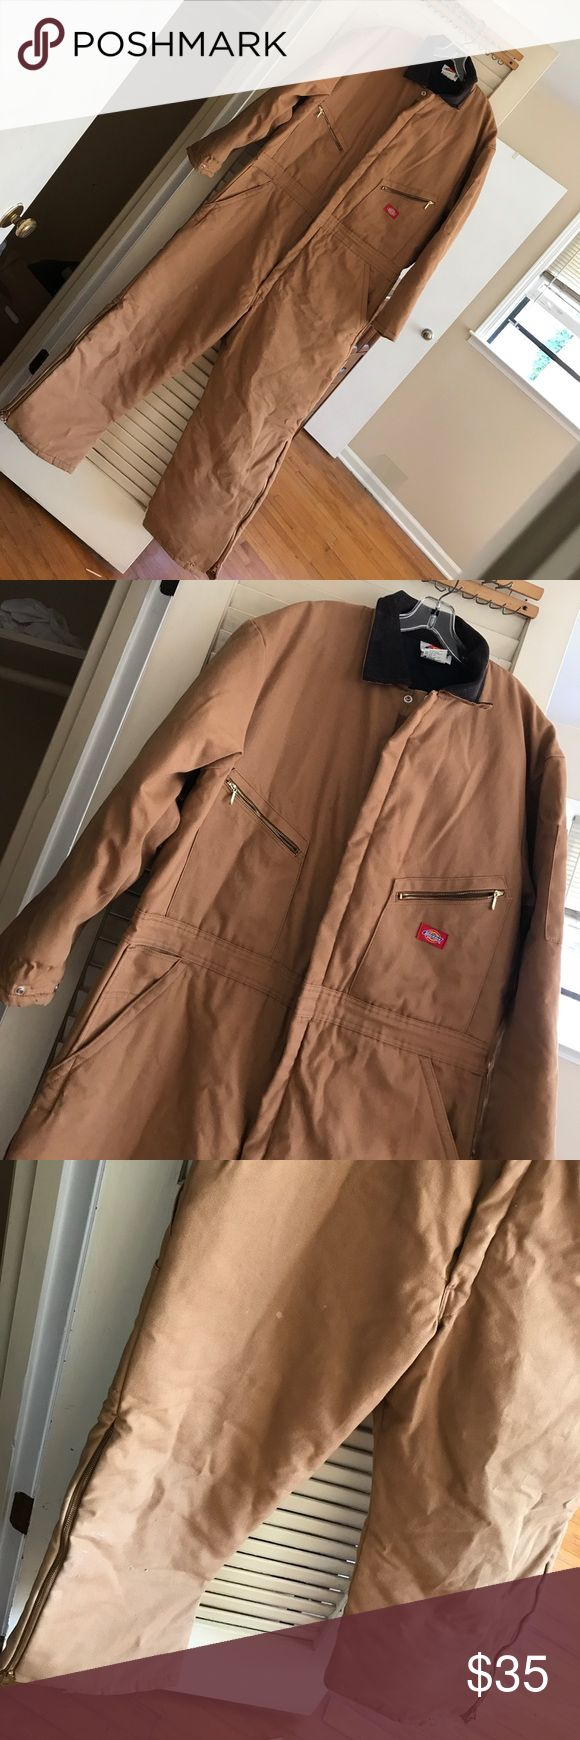 Dickies Men's insulated Coveralls Gently used Dickies men's insulated coveralls in great condition! Only a few barely noticeable spots. This suit has a lot of life left in it! Sz 46-48 SH Dickies Jackets & Coats